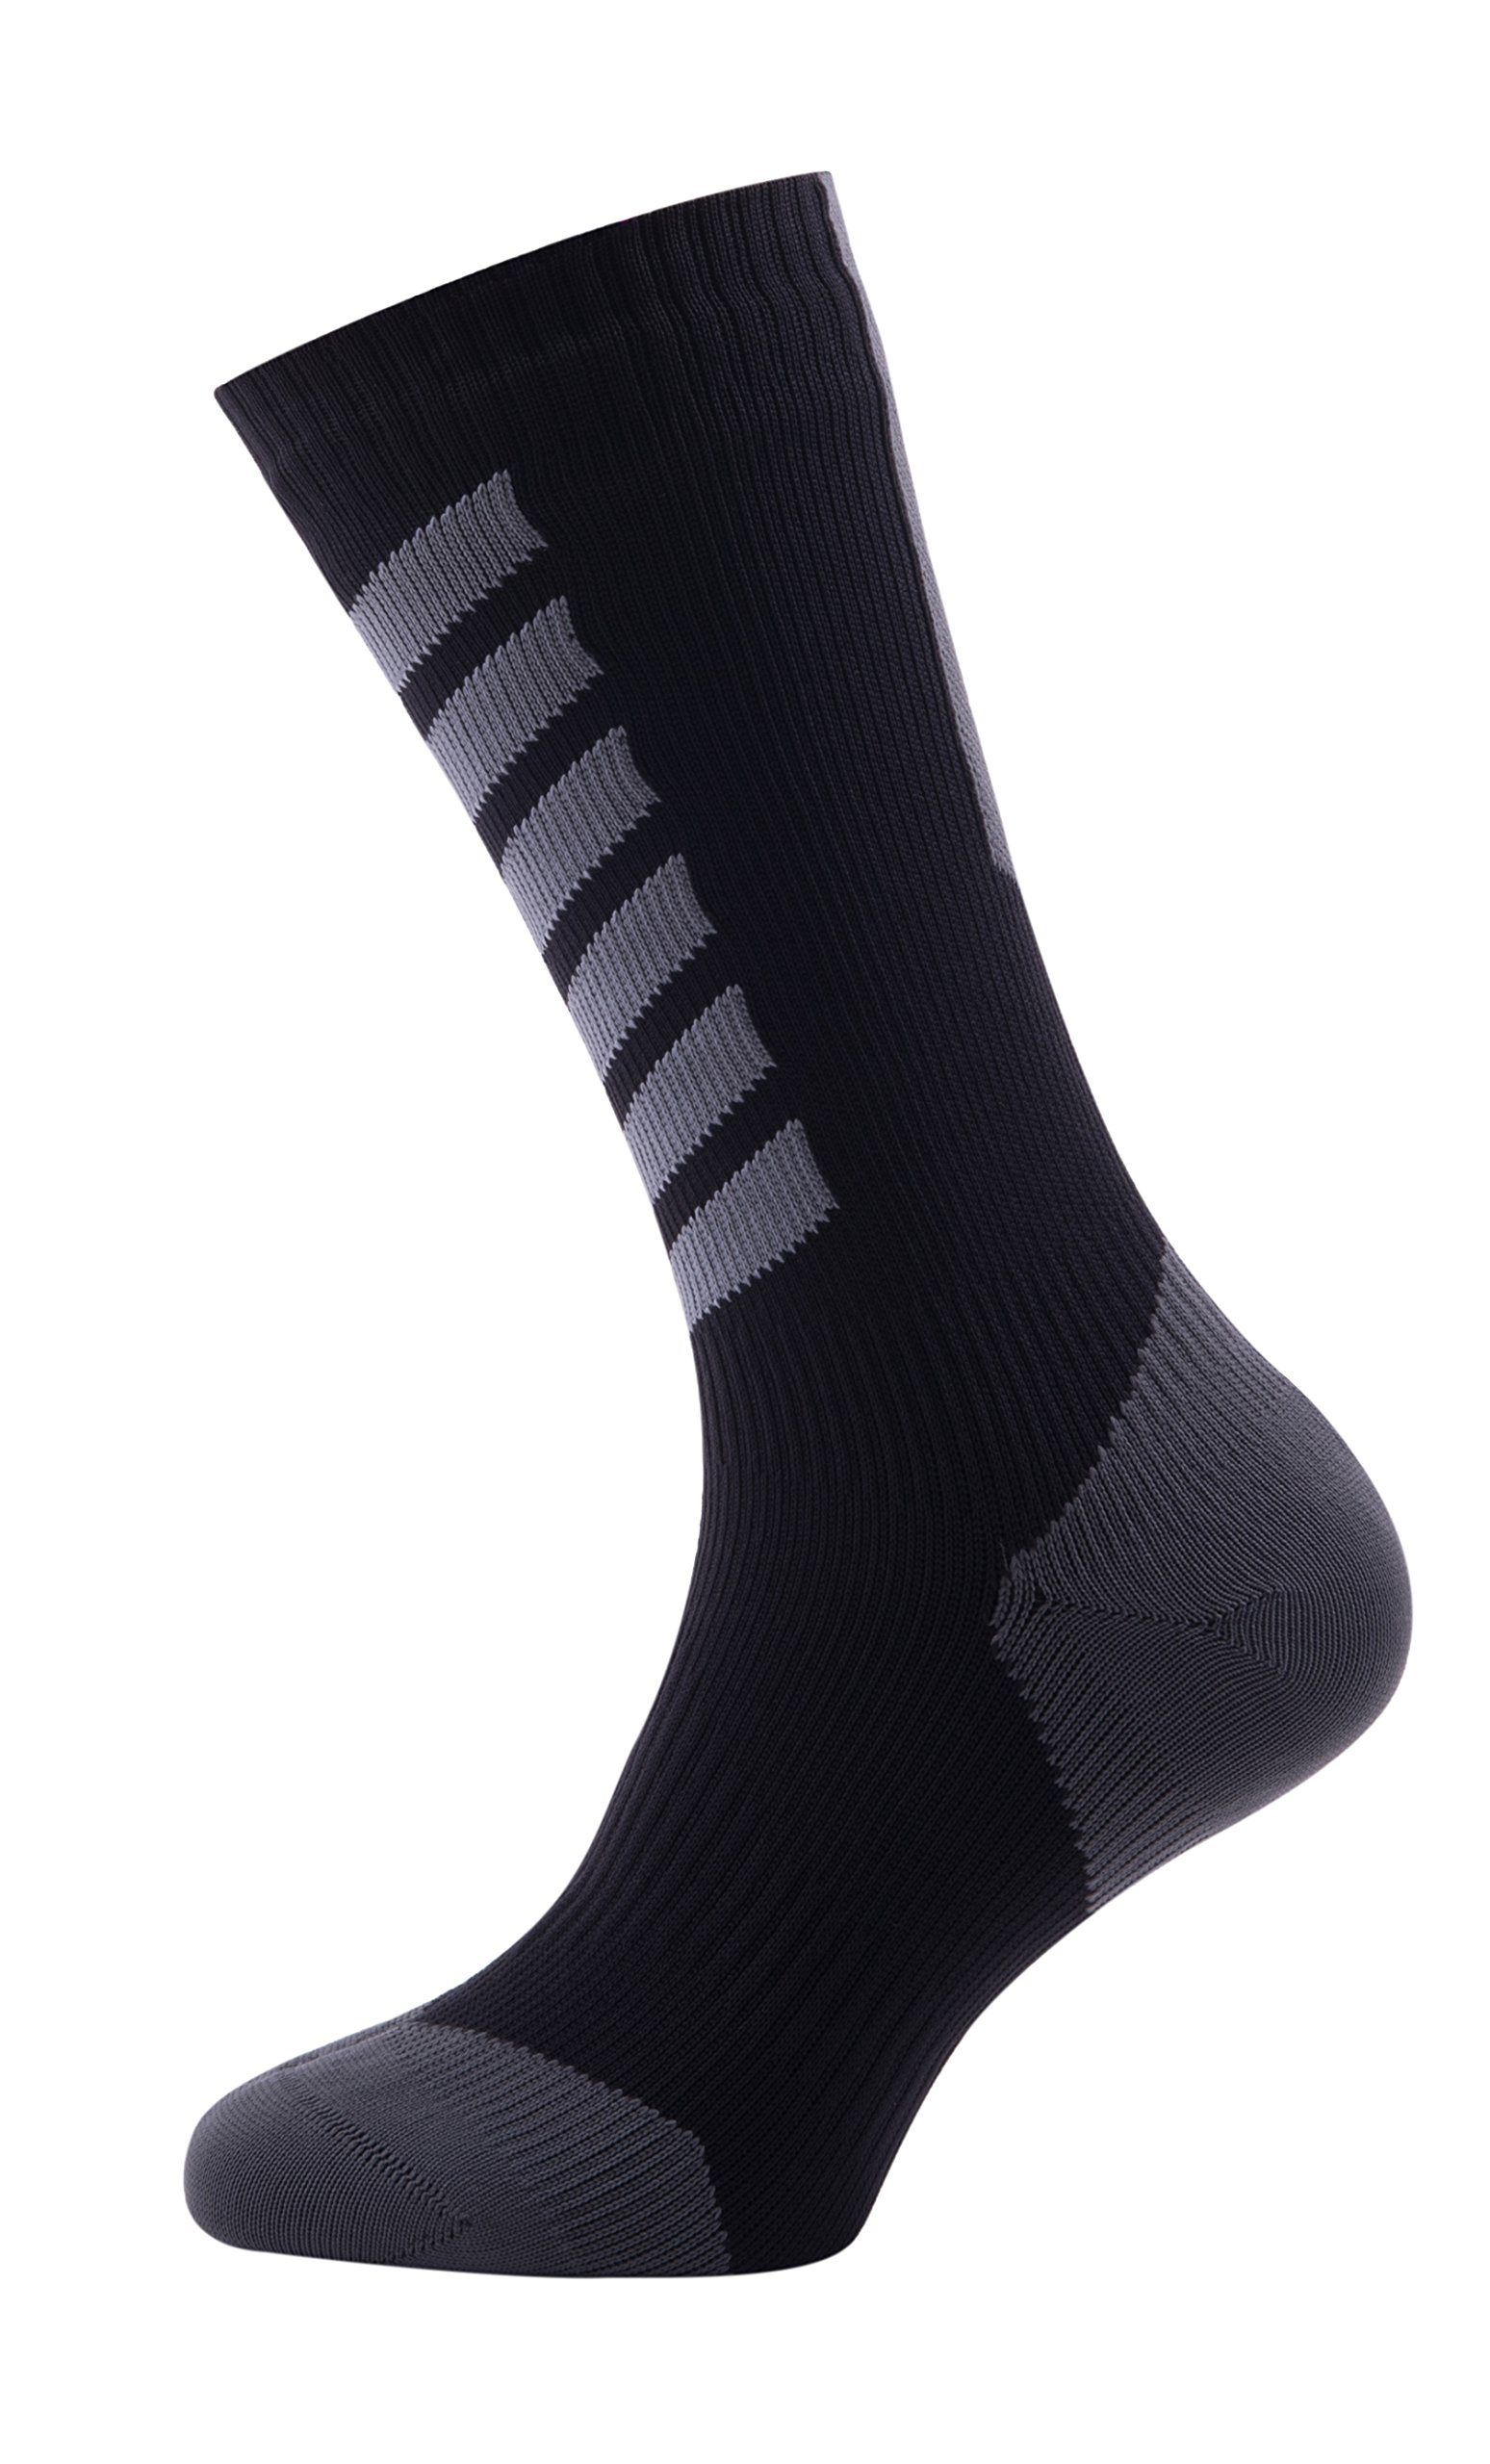 SealSkinz MTB Mid Mid Socks with Hydrostop , X Large - Anthracite/Charcoal/Black. With a Helicase brand sock ring by SEALSKINZ